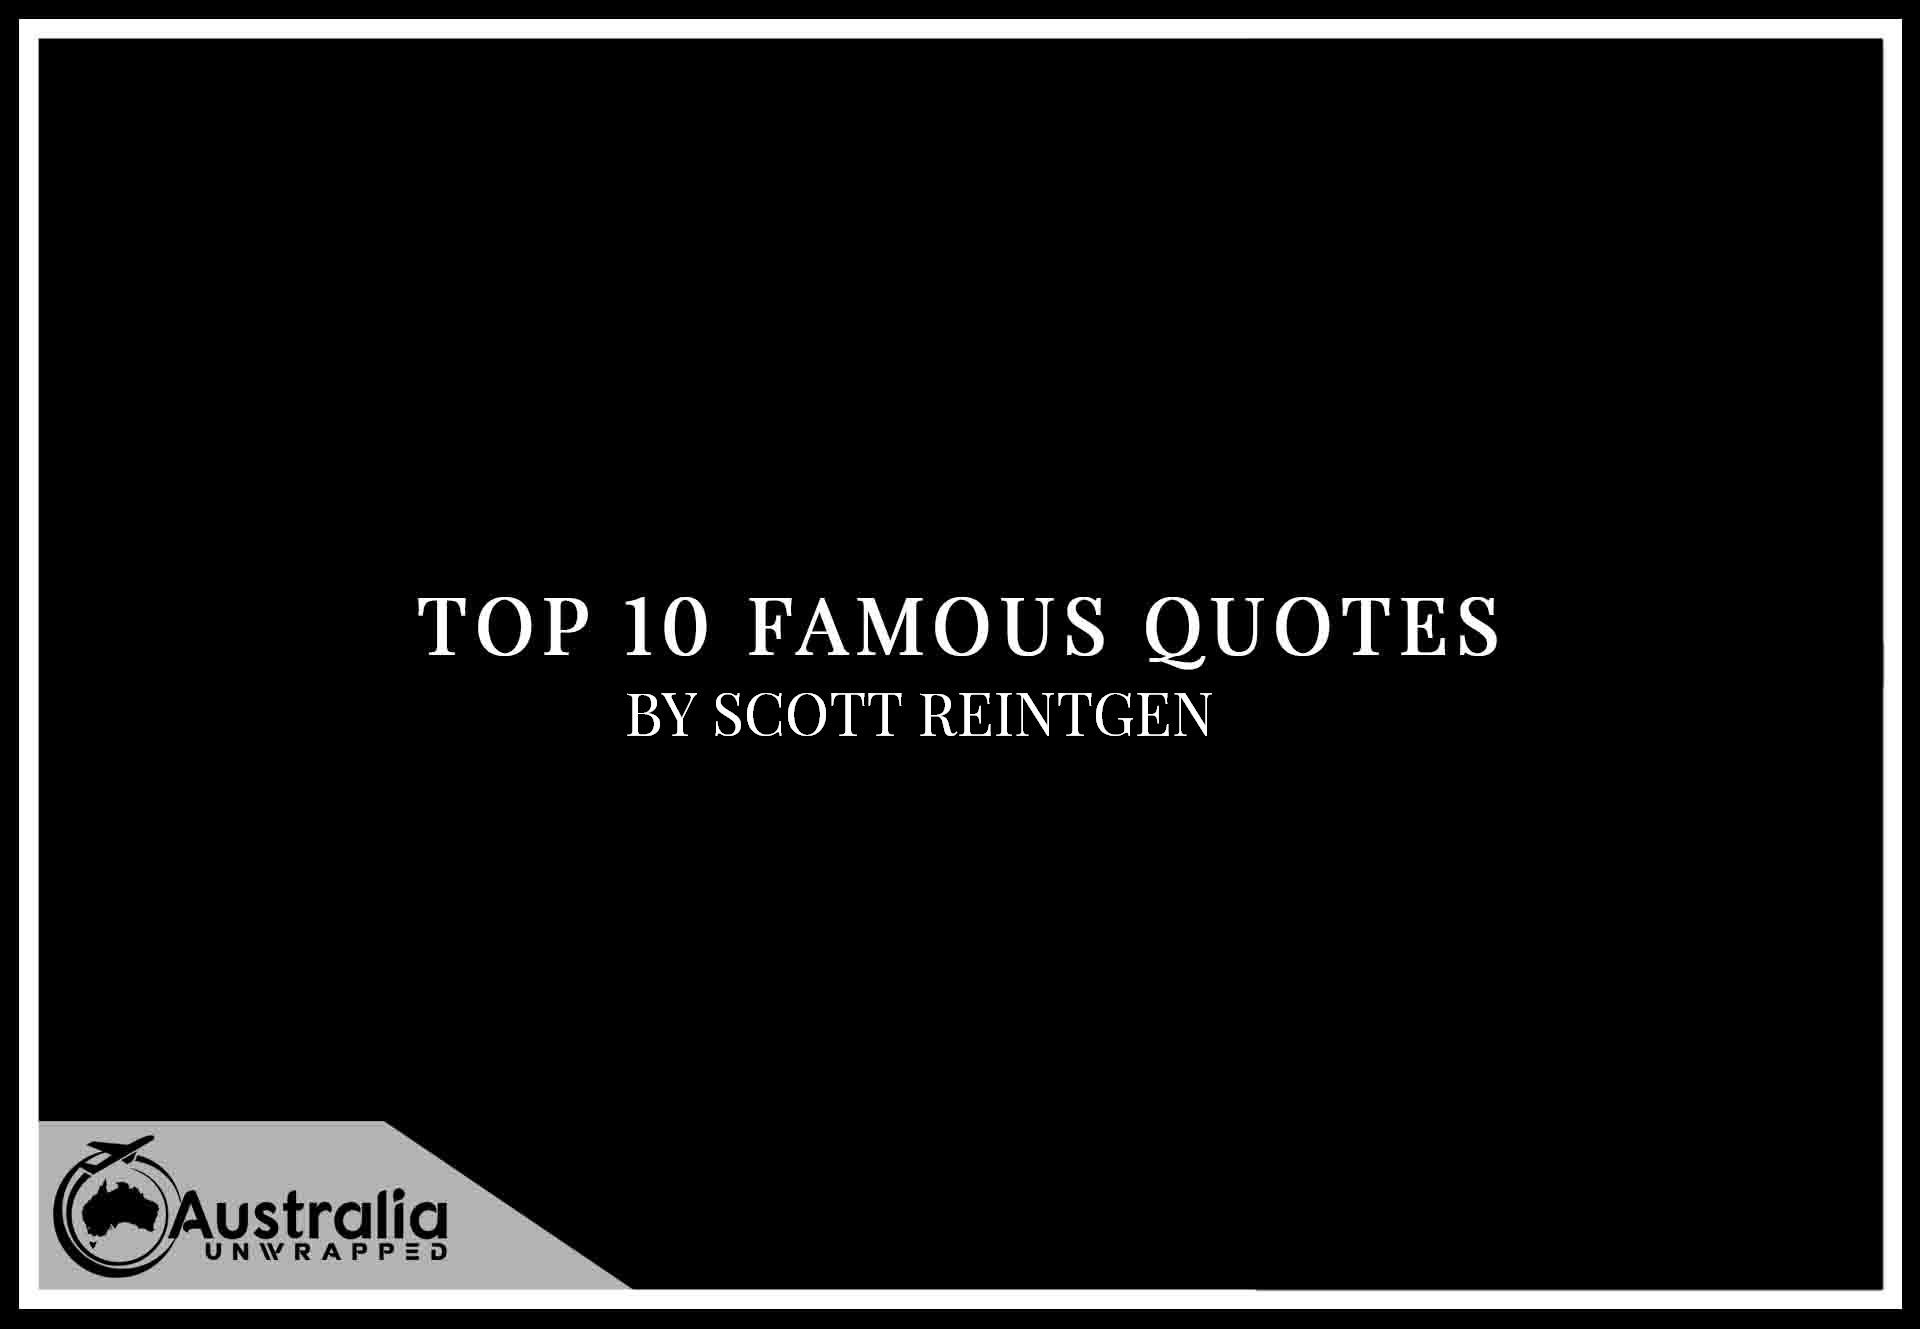 Top 10 Famous Quotes by Author Scott Reintgen